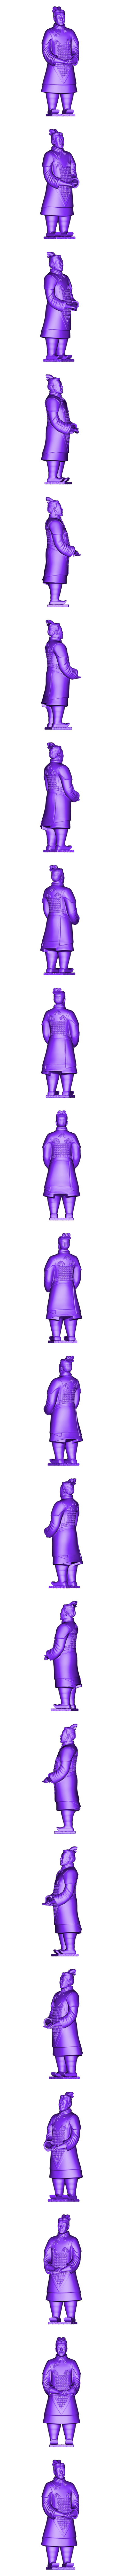 TerracottaArmy.stl Download free STL file Terracotta Army • 3D print template, stlfilesfree